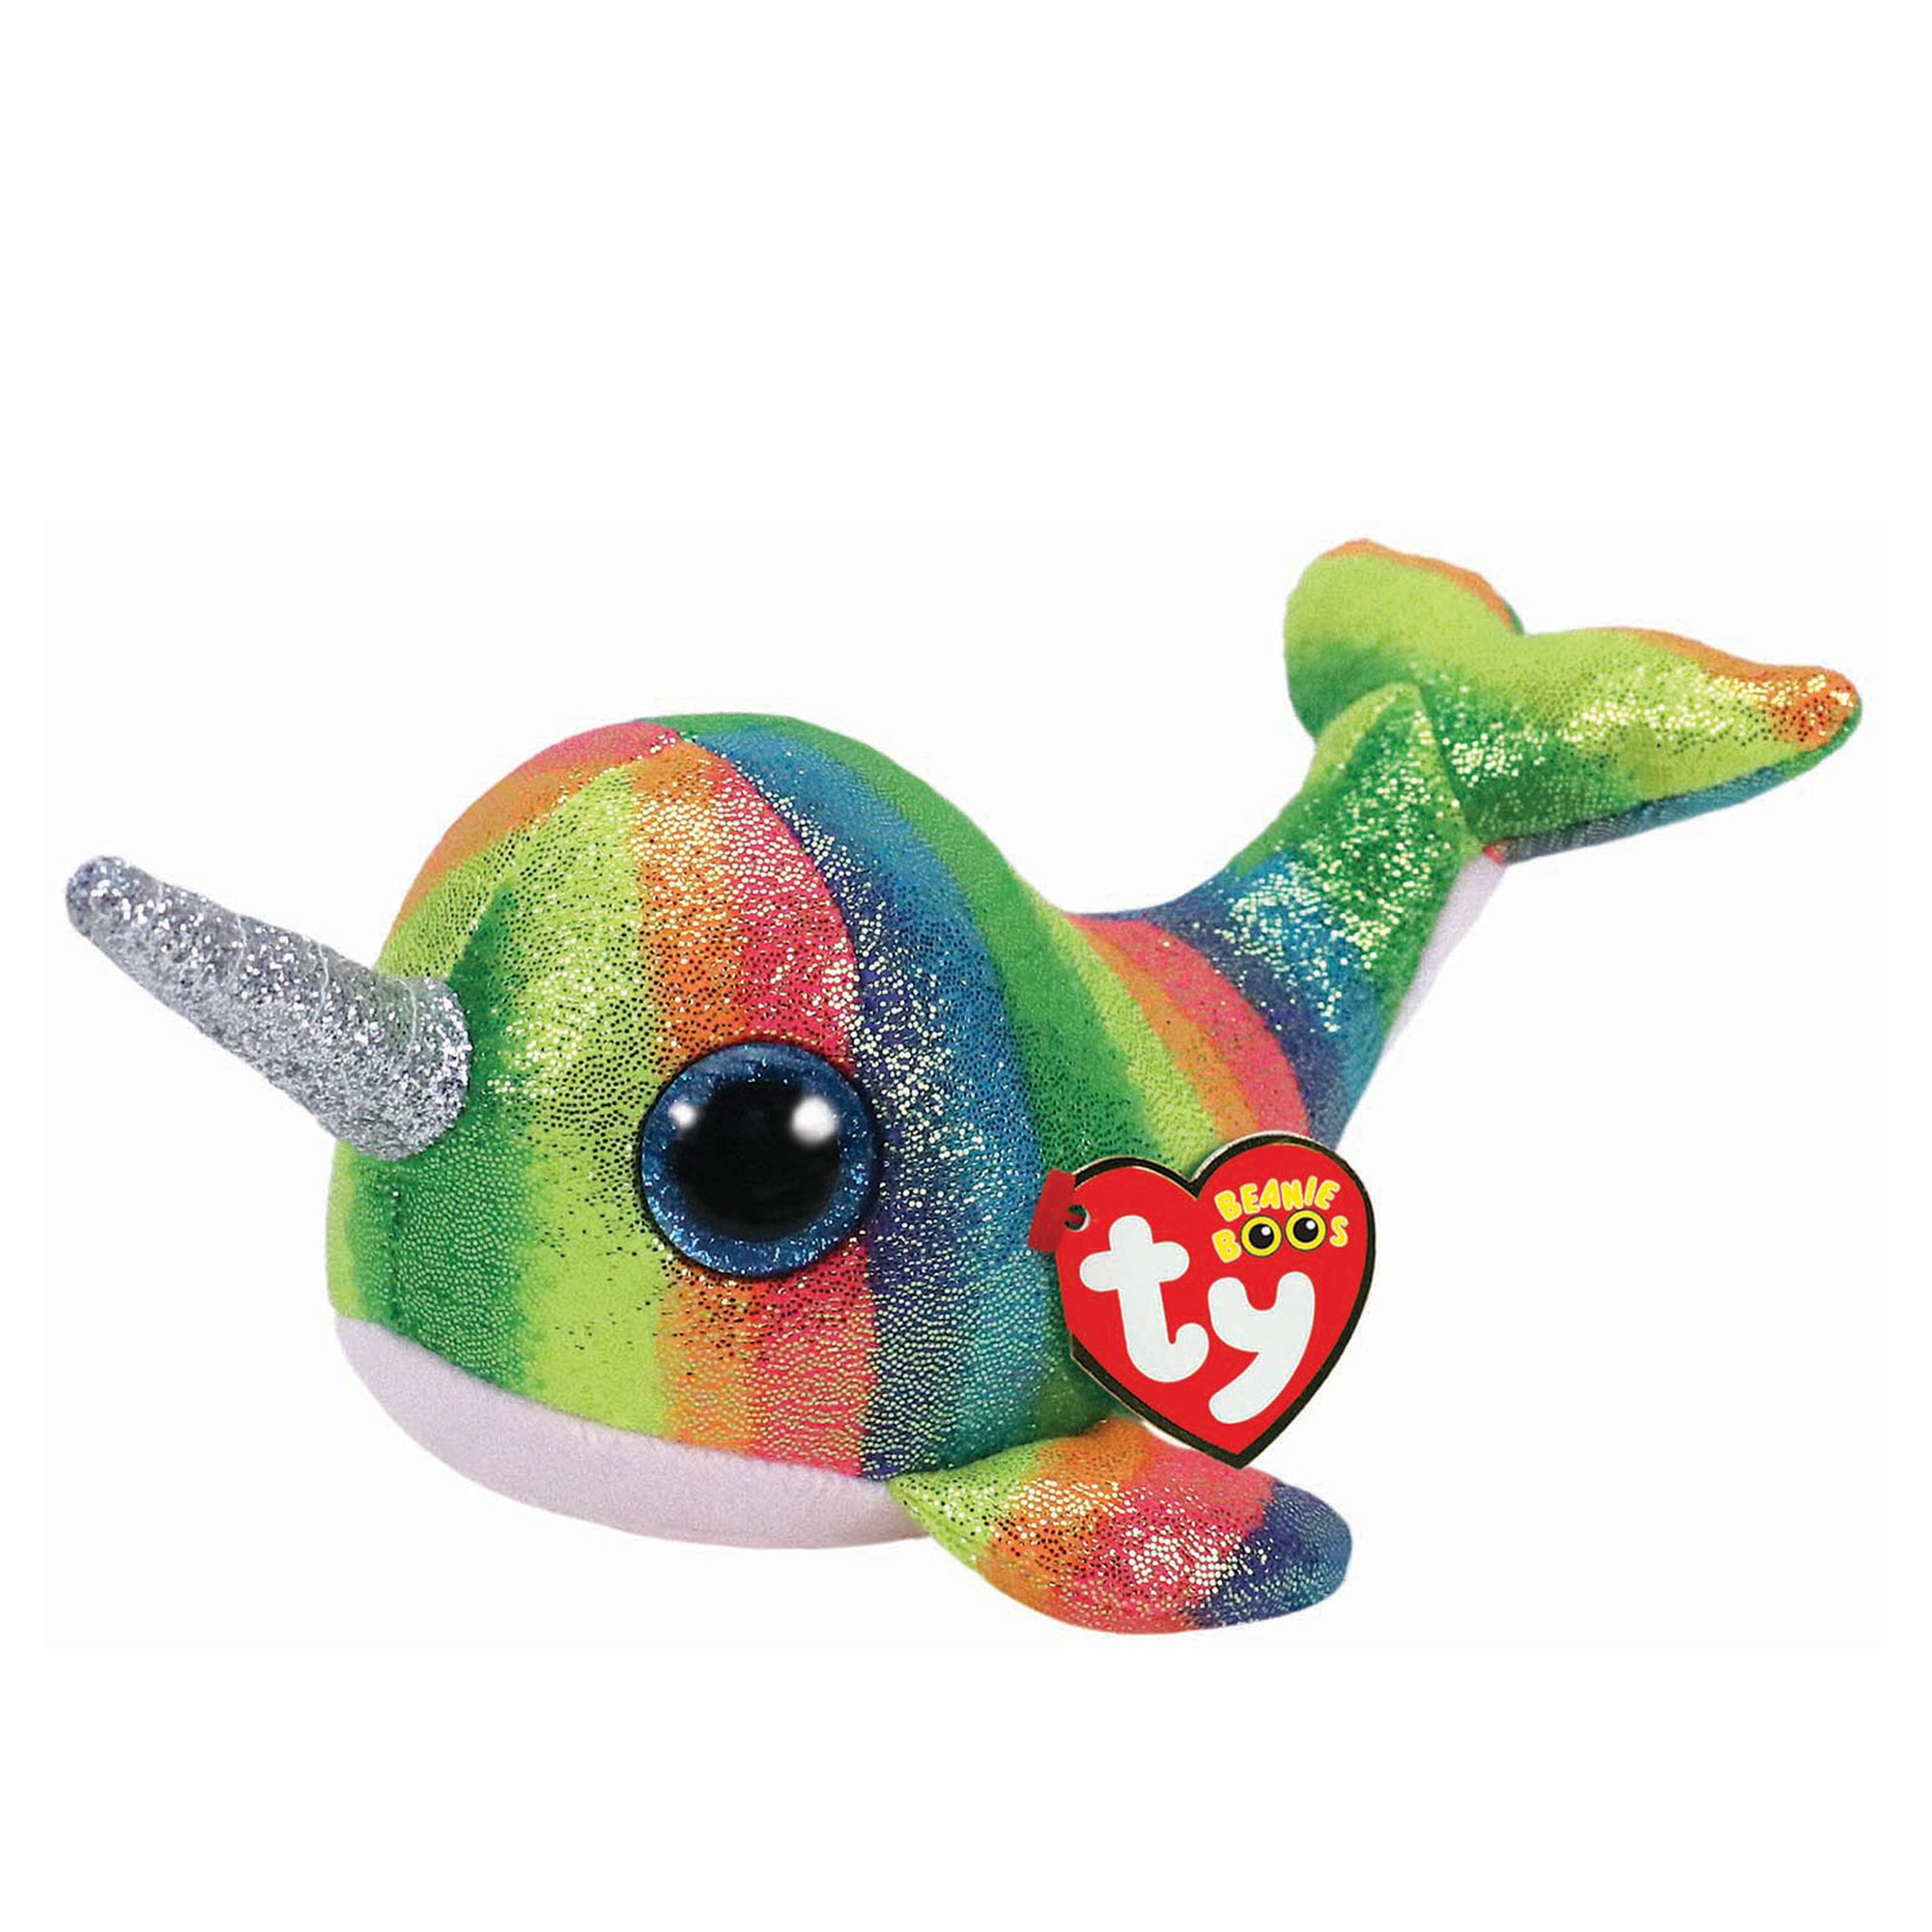 e52345b953e Ty Beanie Boo Small Nori the Narwhal Soft Toy